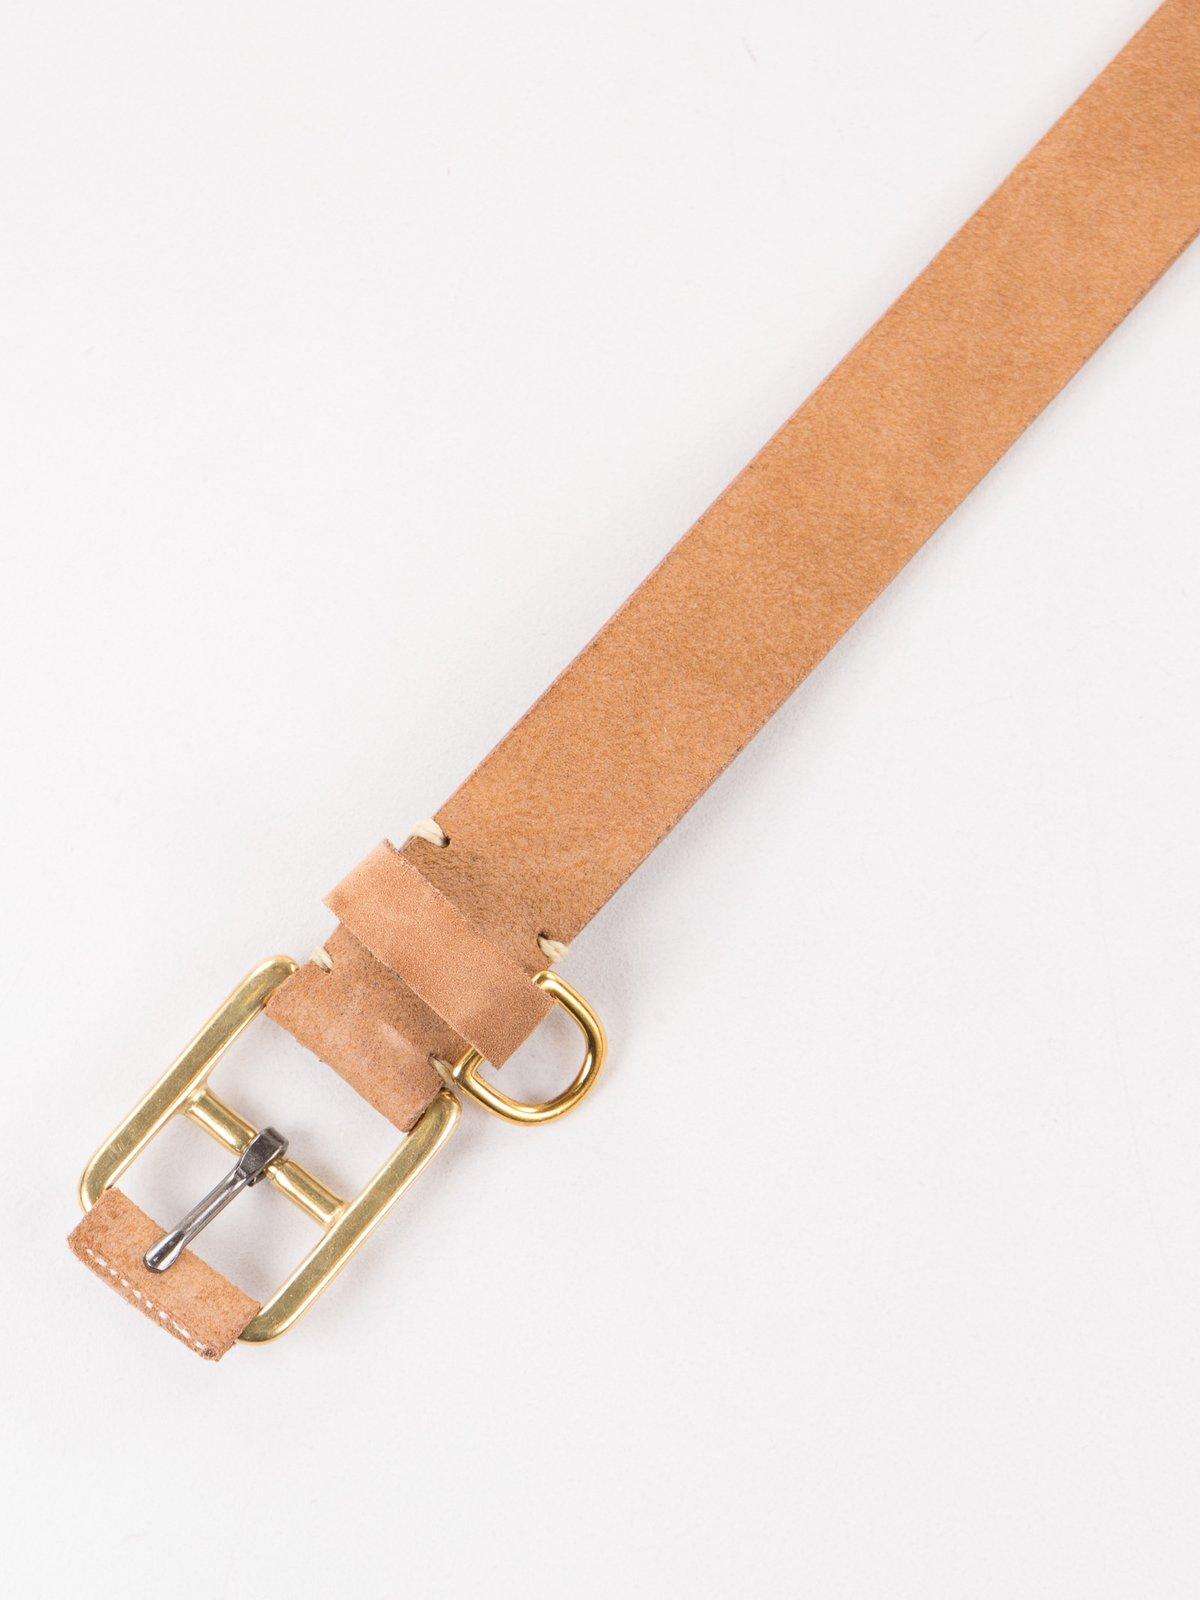 G Brown FO Stitched D–Ring Belt - Image 2